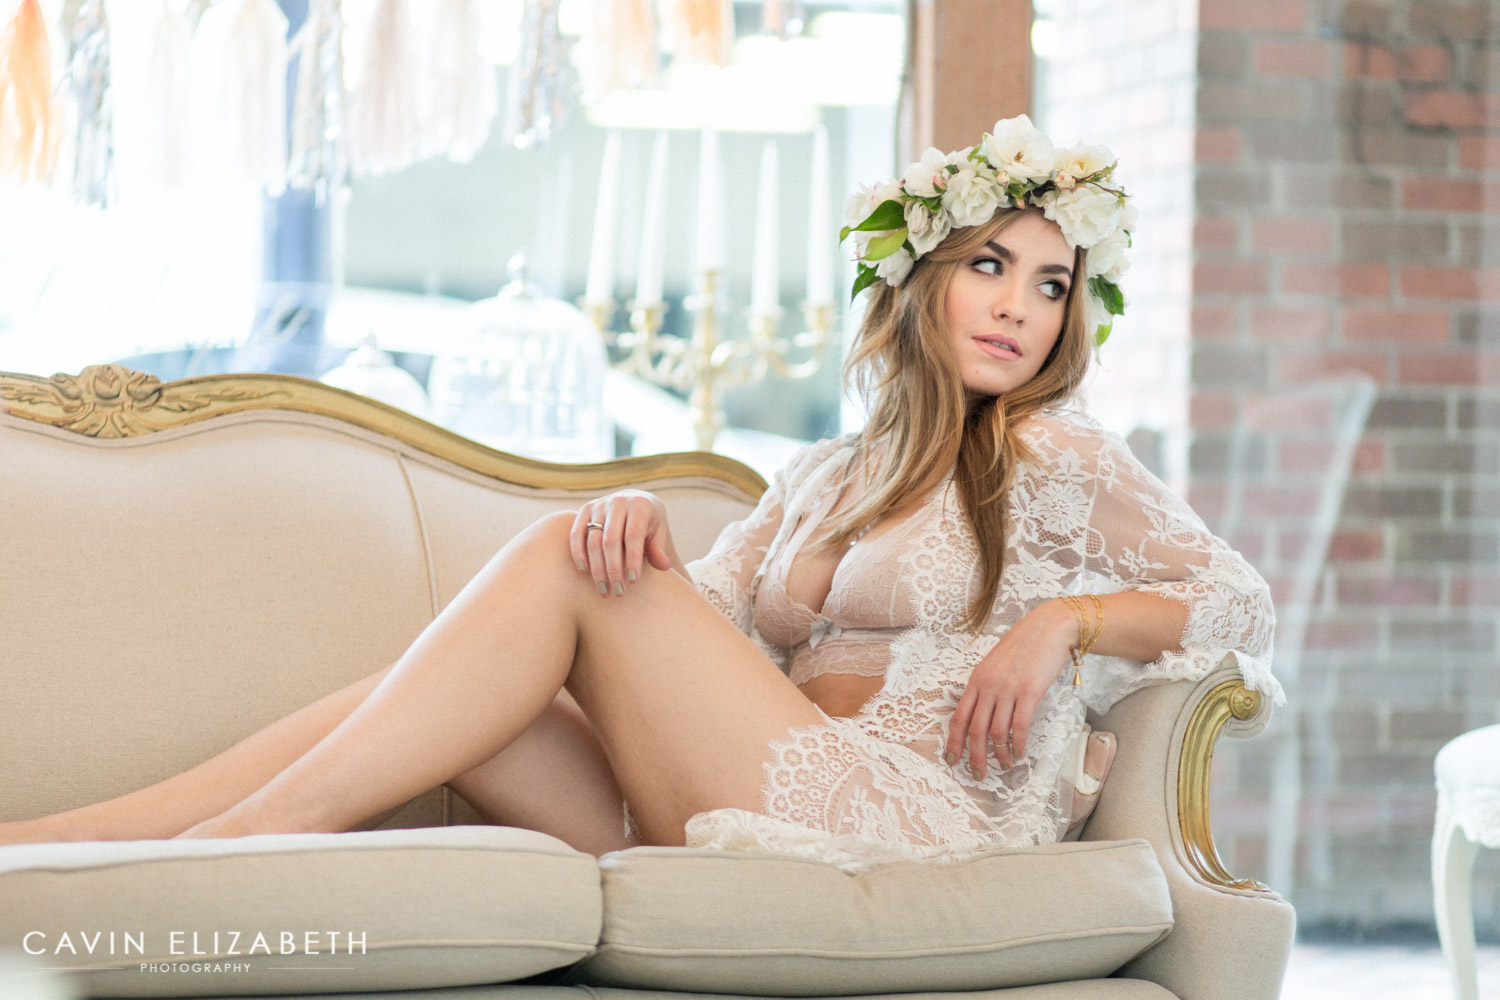 Bride To Be Wears Siren Fl Co Flower Crown And White Lace Robe For Boudoir Shoot